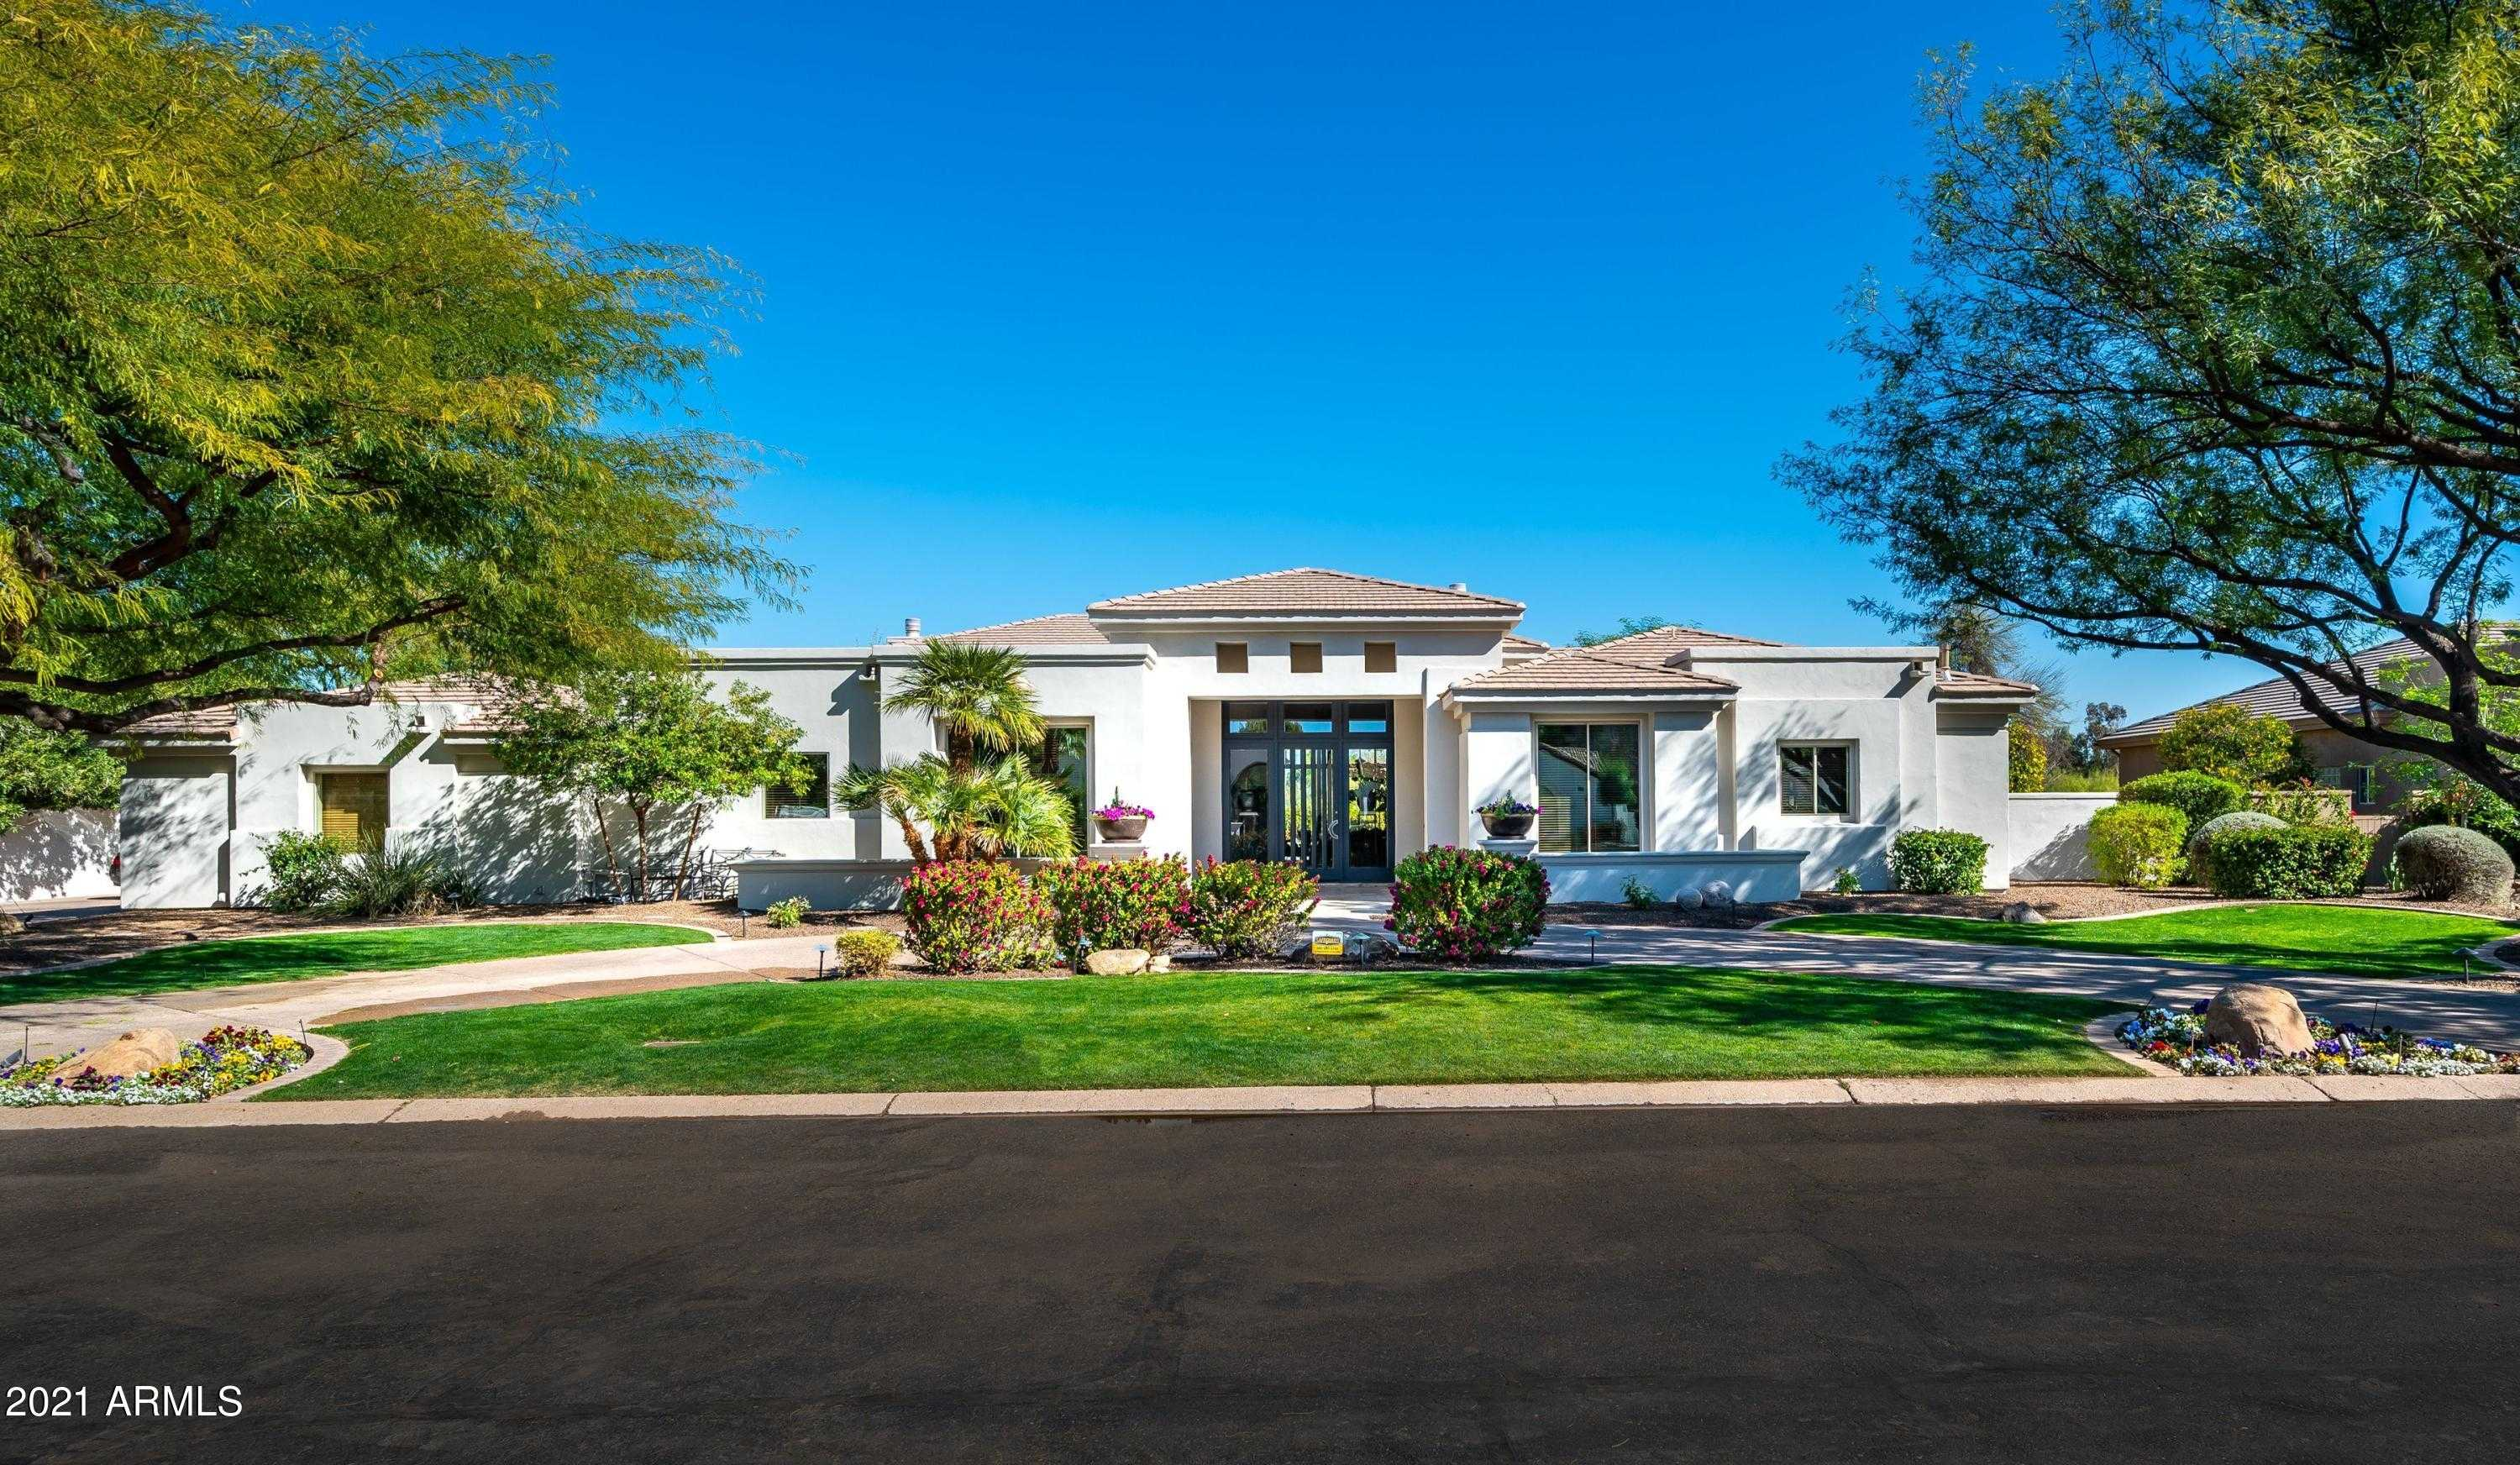 $3,499,999 - 4Br/4Ba - Home for Sale in Cheney Estates, Paradise Valley